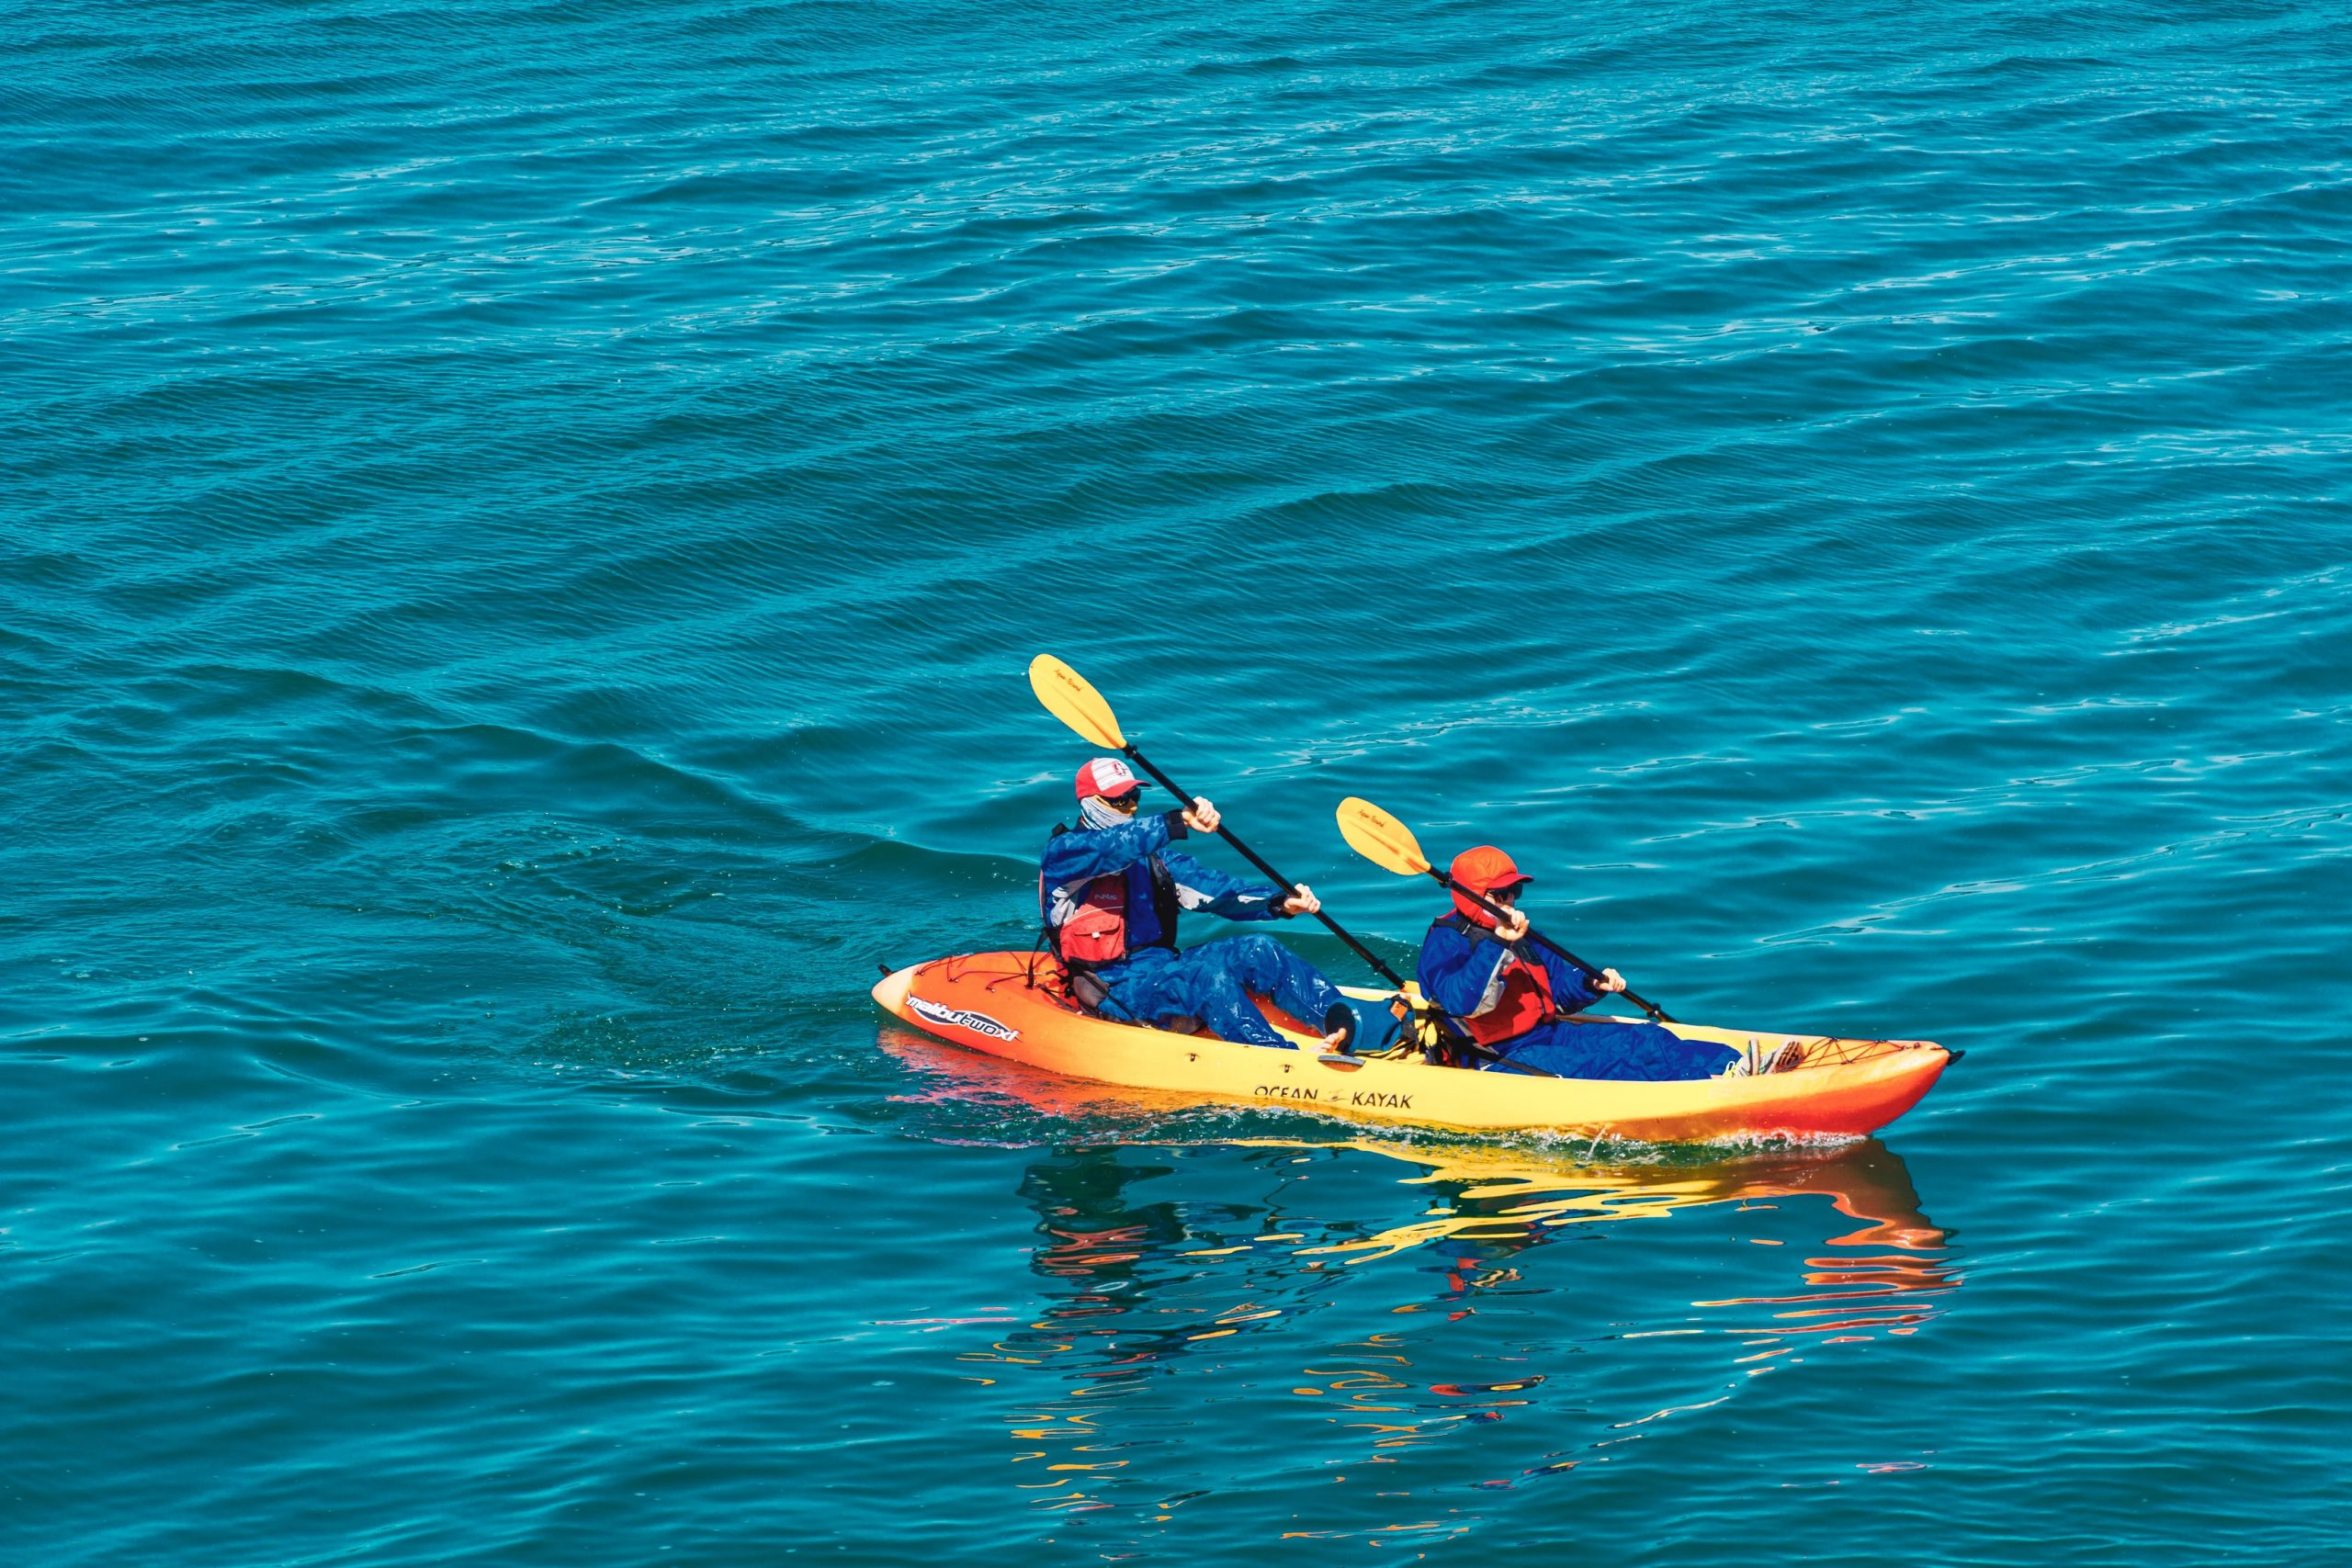 Best Inflatable Kayaks for 2 People